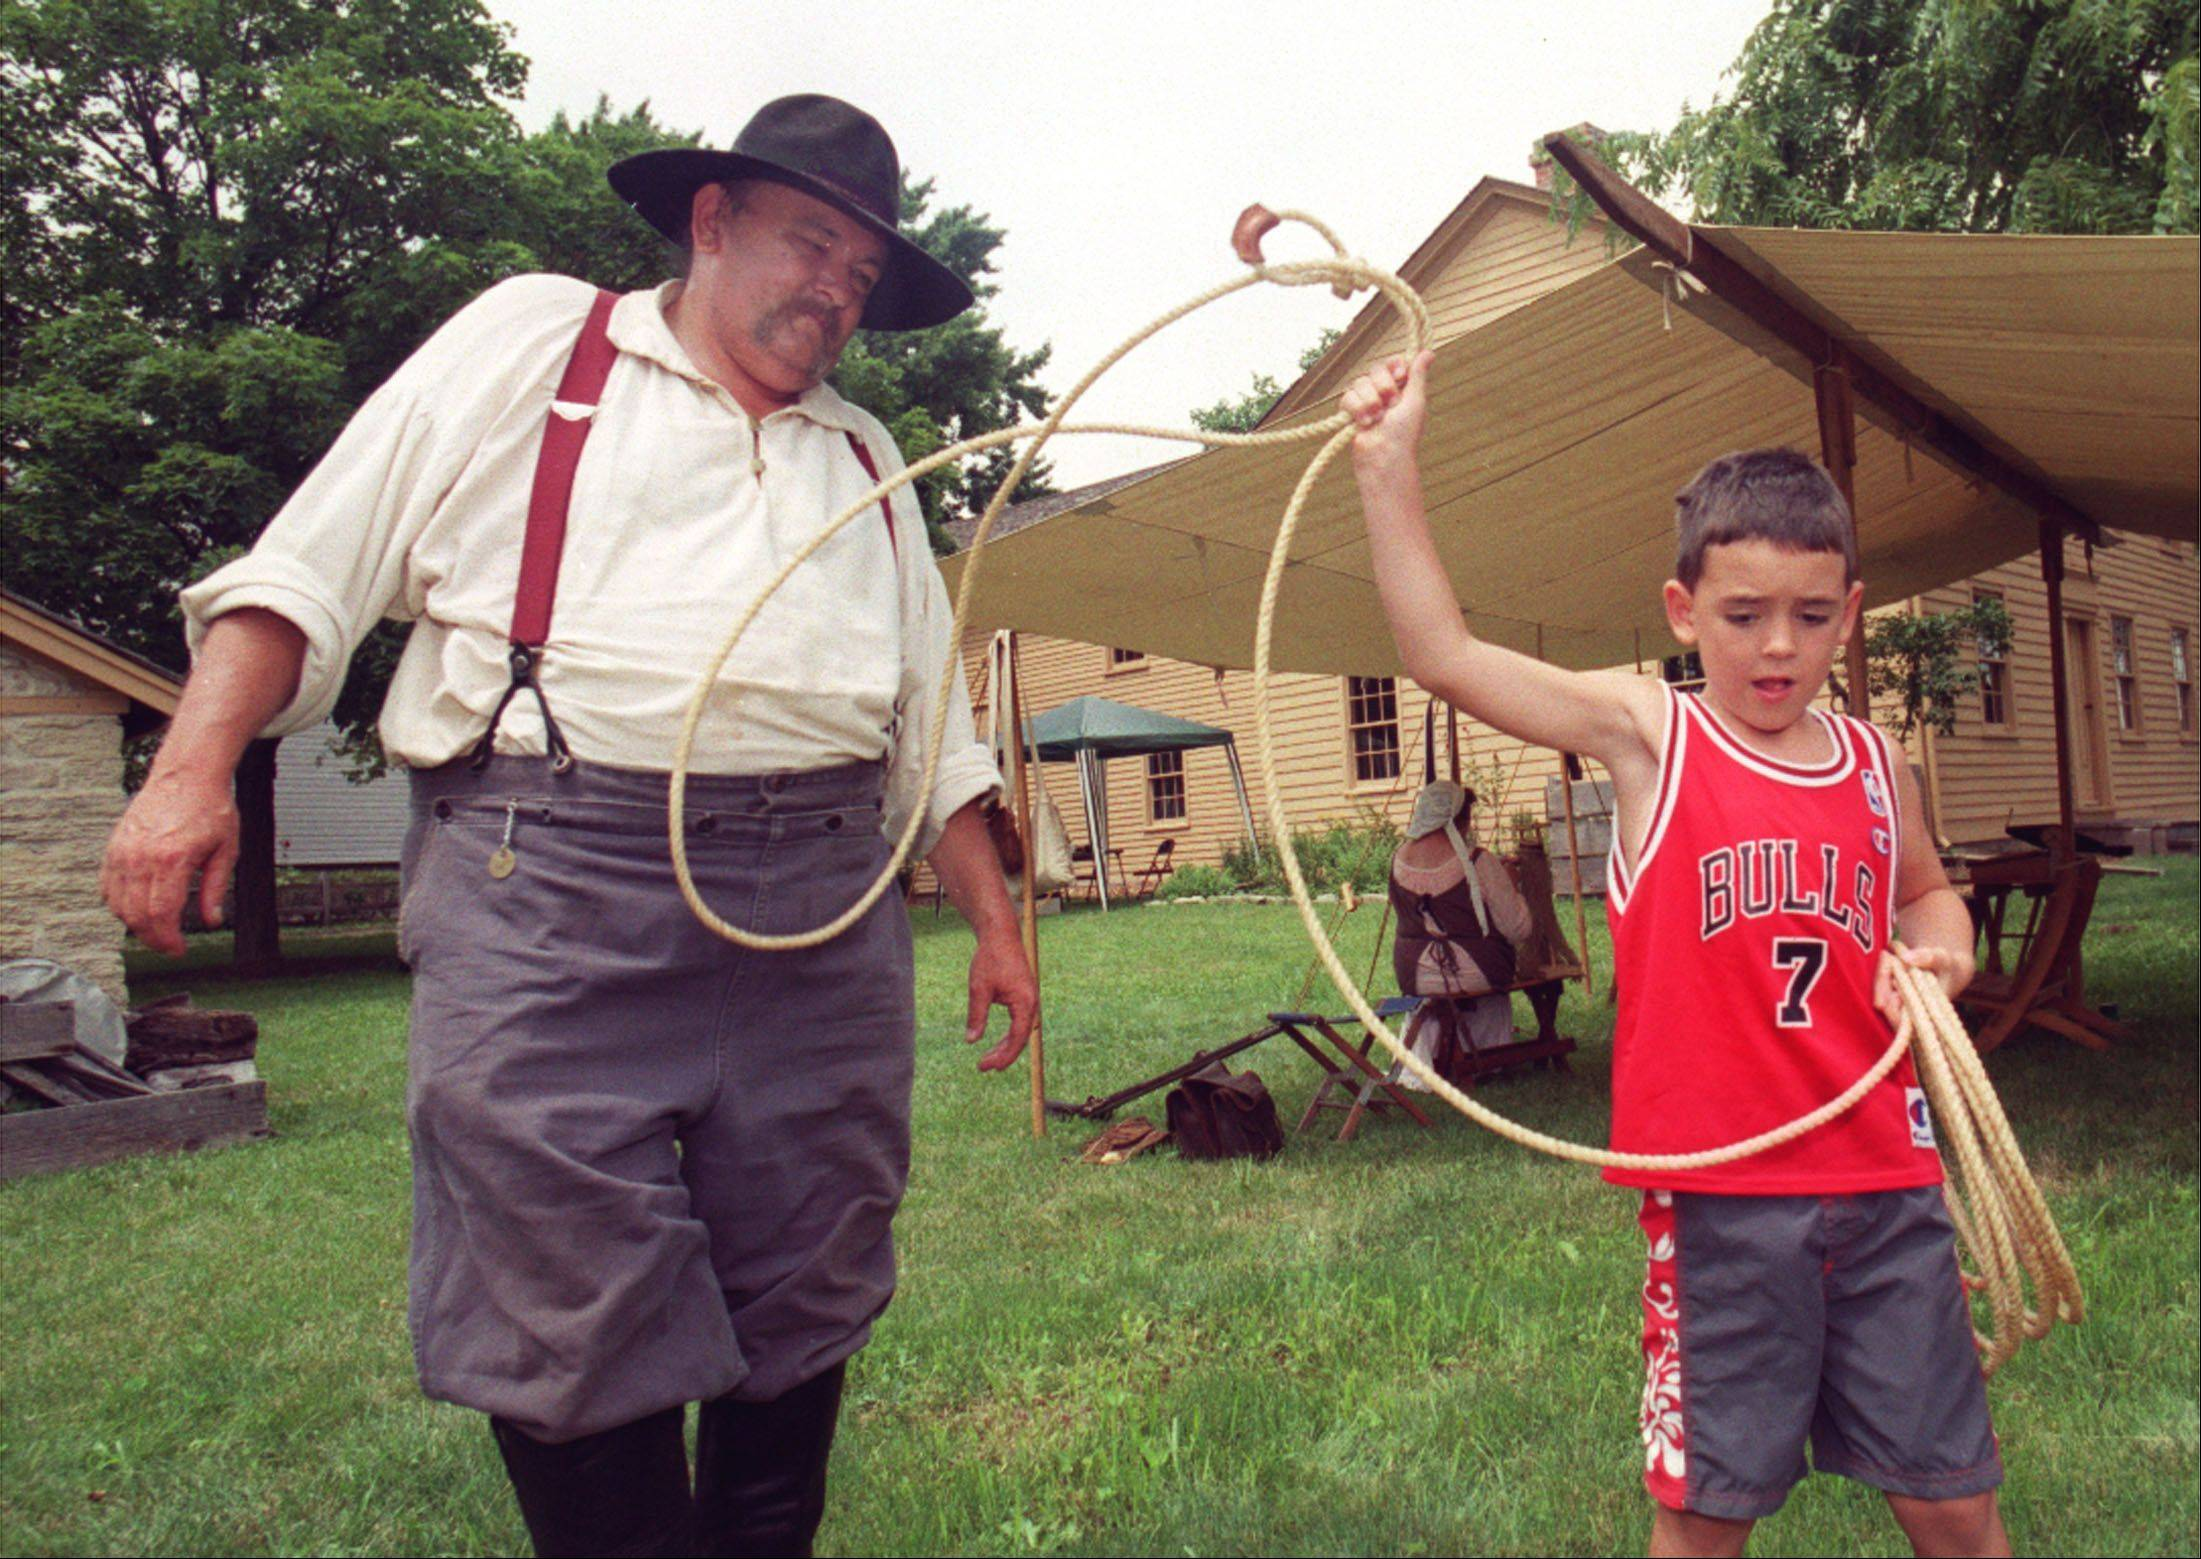 Attendees of the Glen Ellyn Historical Society's annual Tavern Day can play with 1840s-era games.